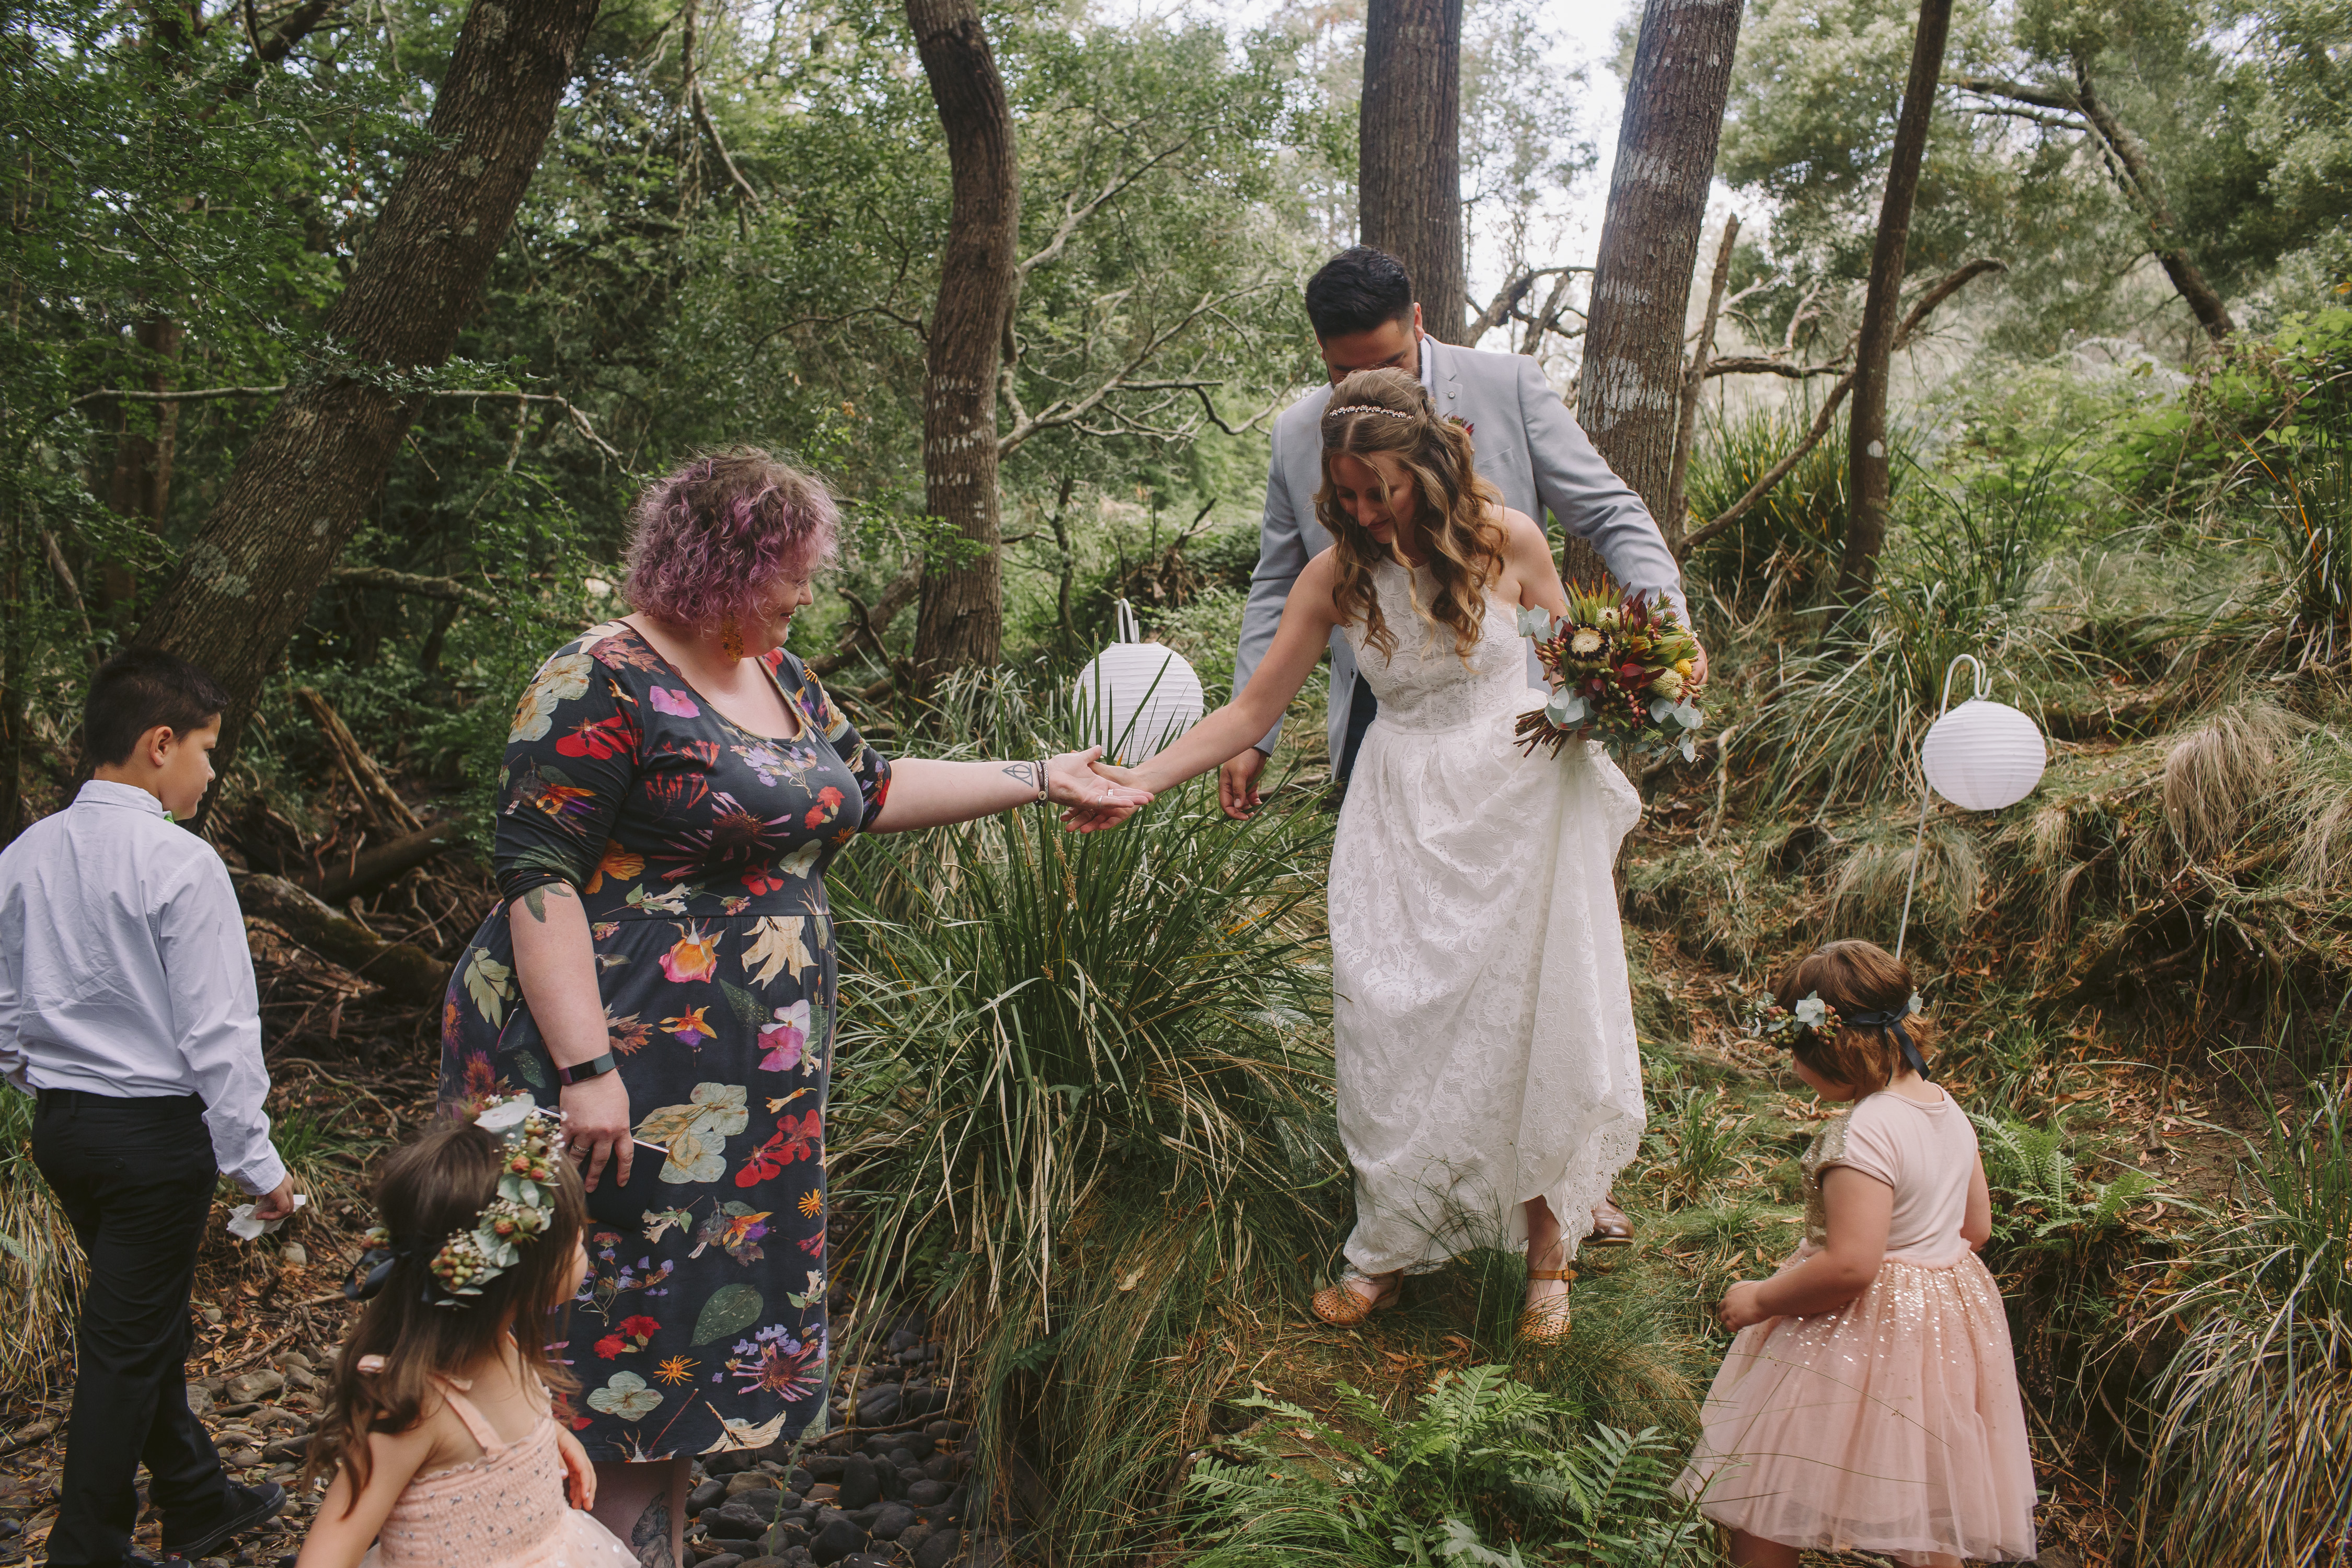 a person with curly purple hair in a botanical print dress holds their hand out to help a bride about to take a step down into the creekbed, her groom is behind her and they are surrounded by the bush